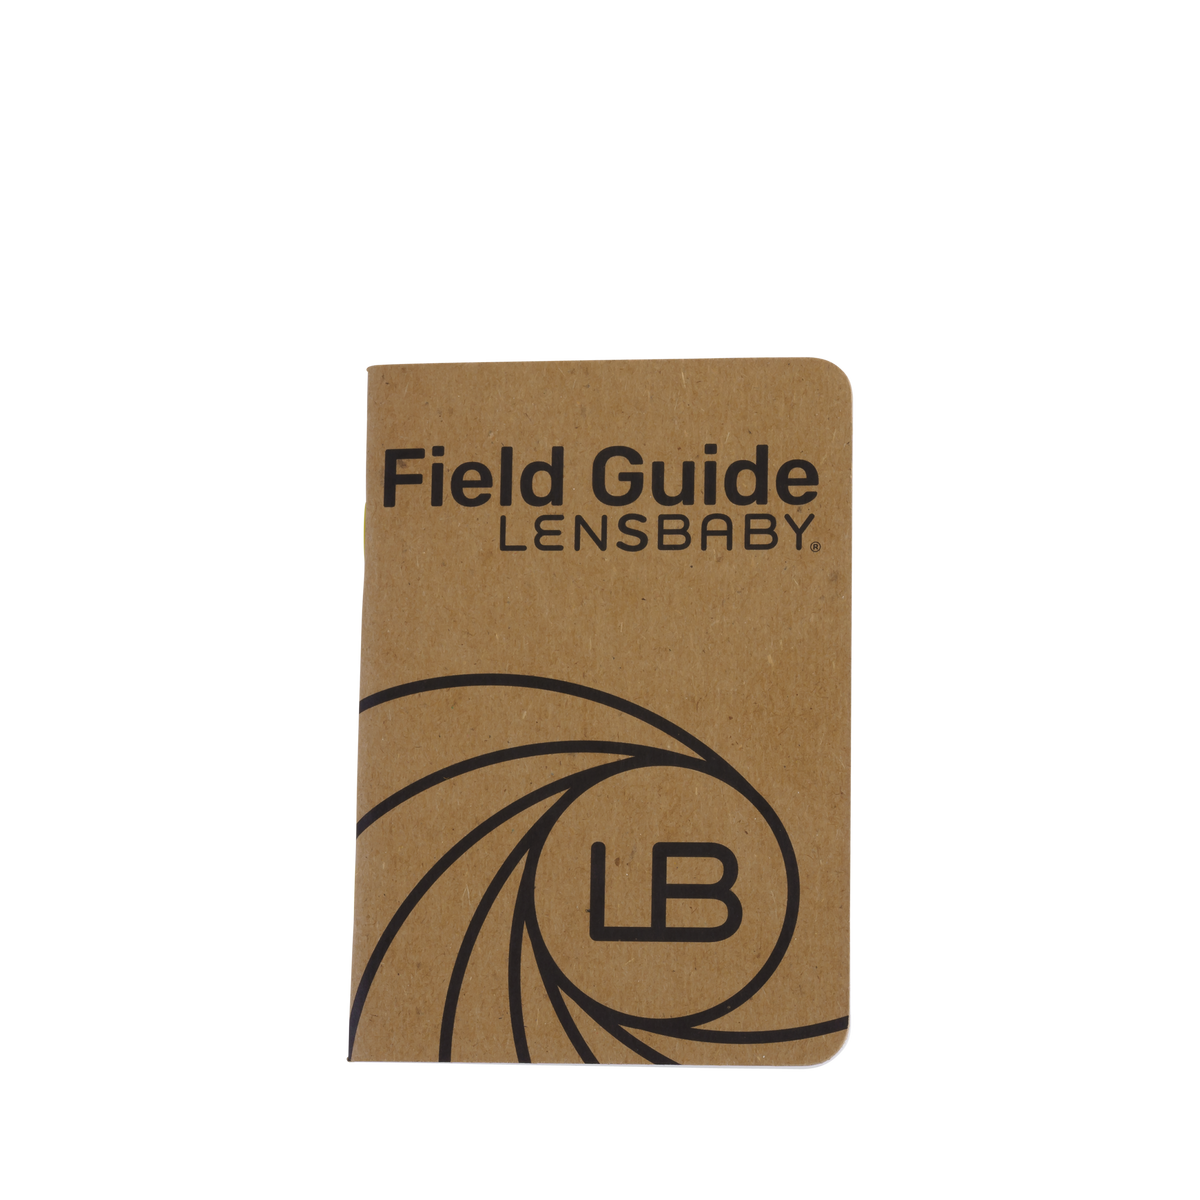 Lensbaby Photographer Field Guide Pocket Book - 3 Pack - Lensbaby Creative Effect Camera Lenses